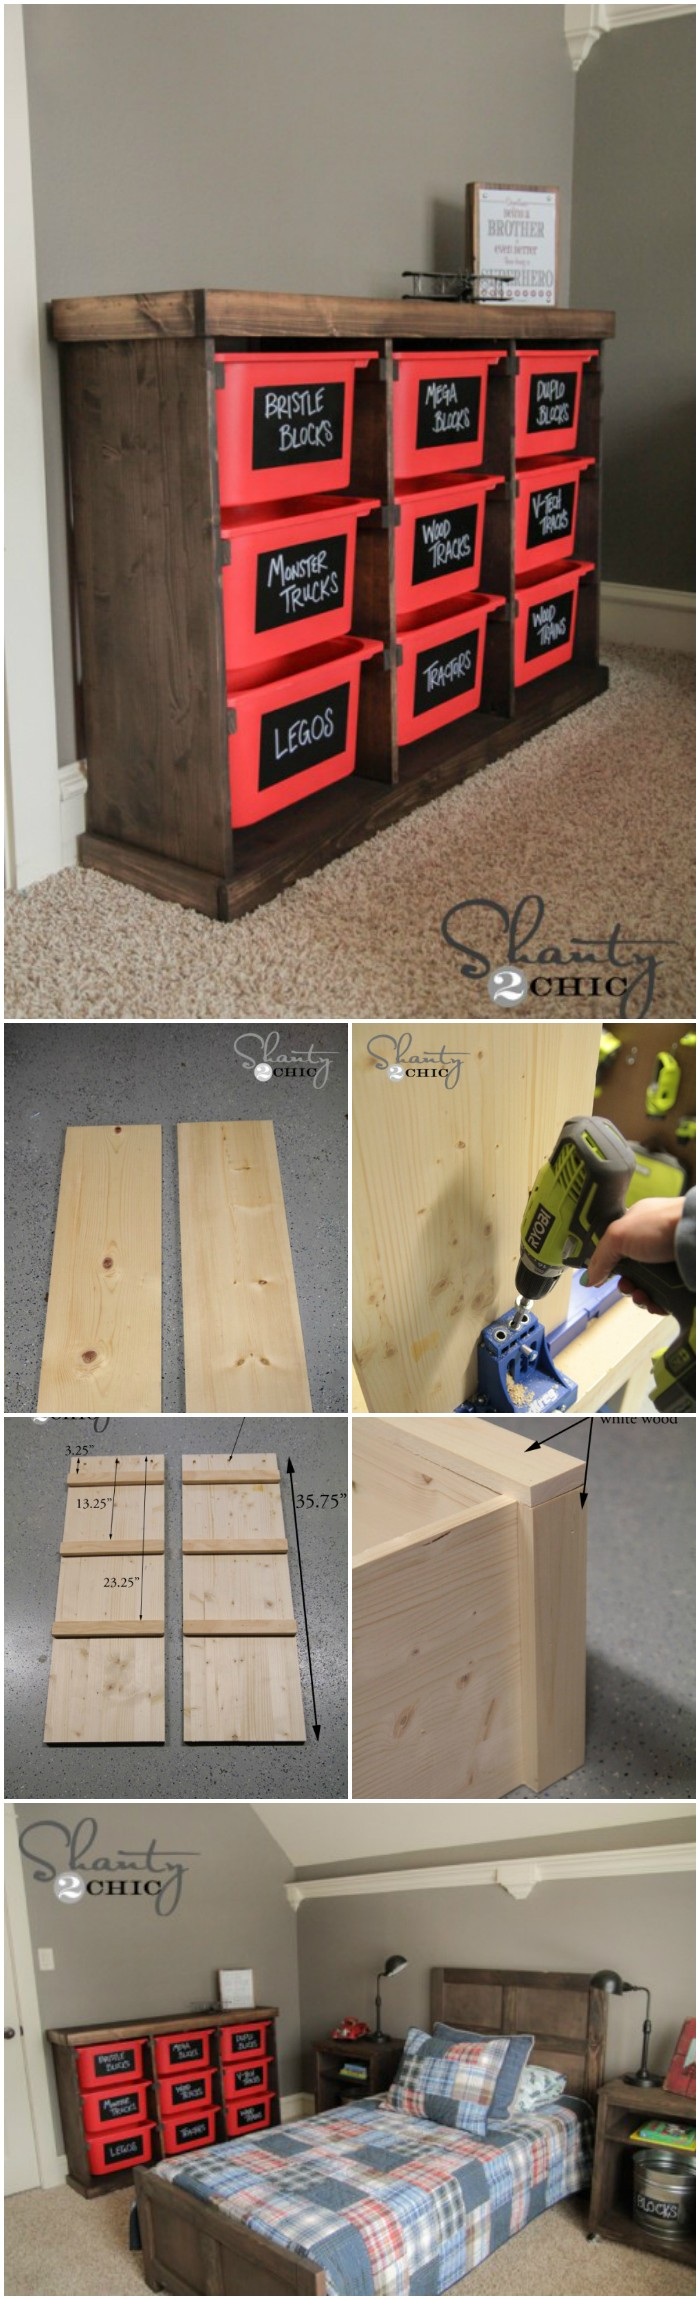 Wood and Plastic Baskets Storage Rack Cheap DIY Projects For Your Home Decoration